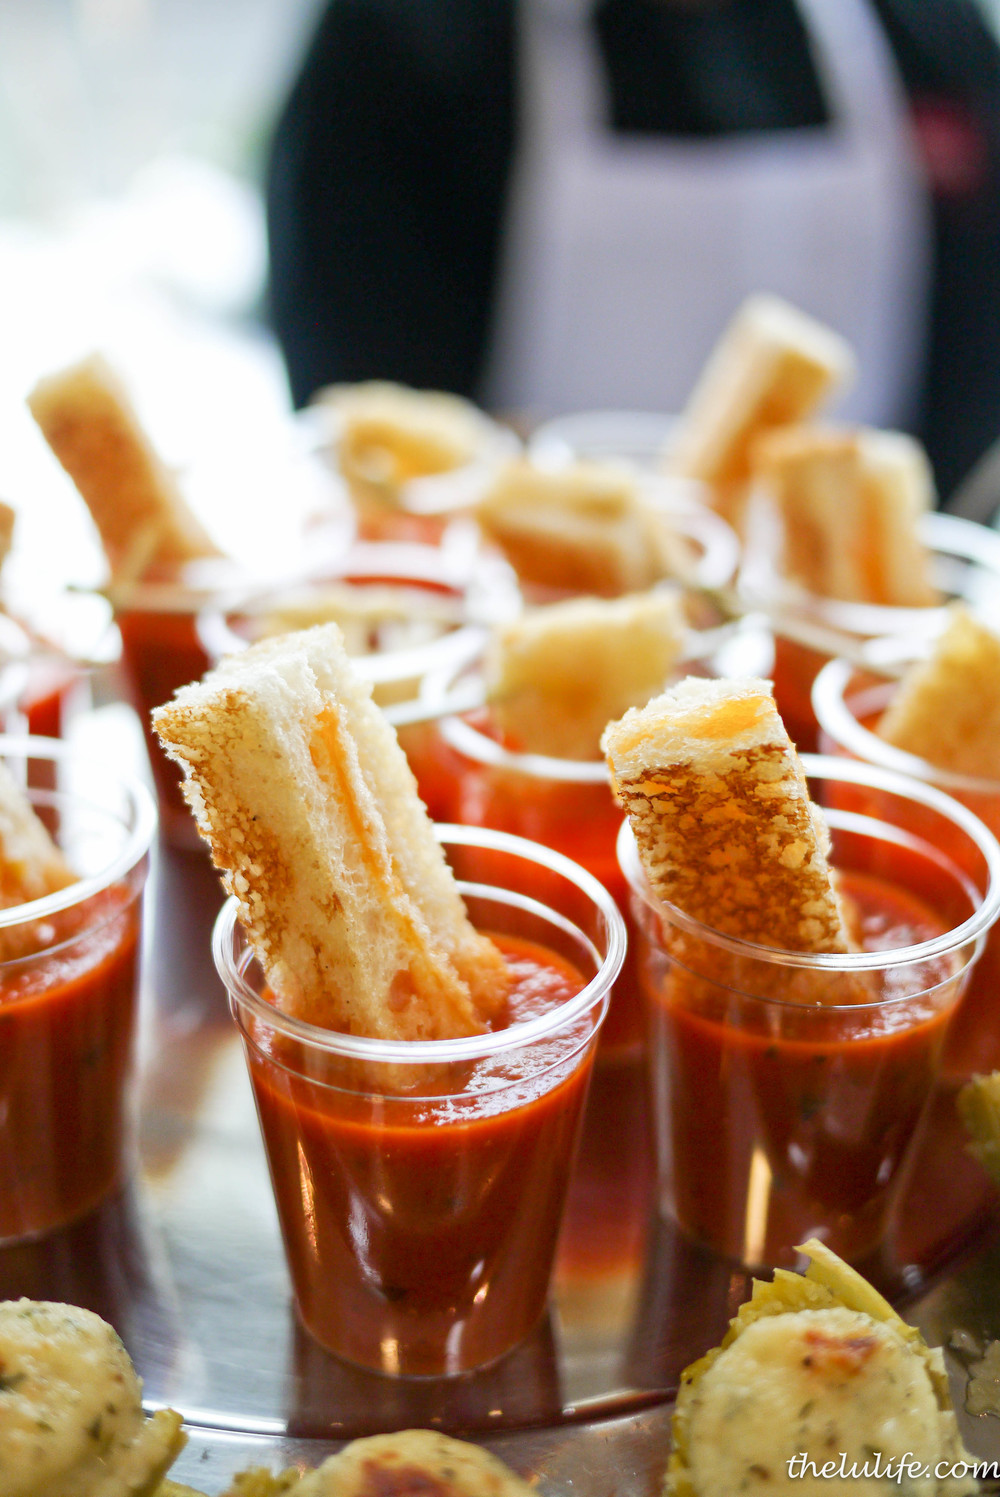 Grilled cheddar stick and tomato basil soup with basil chiffonade